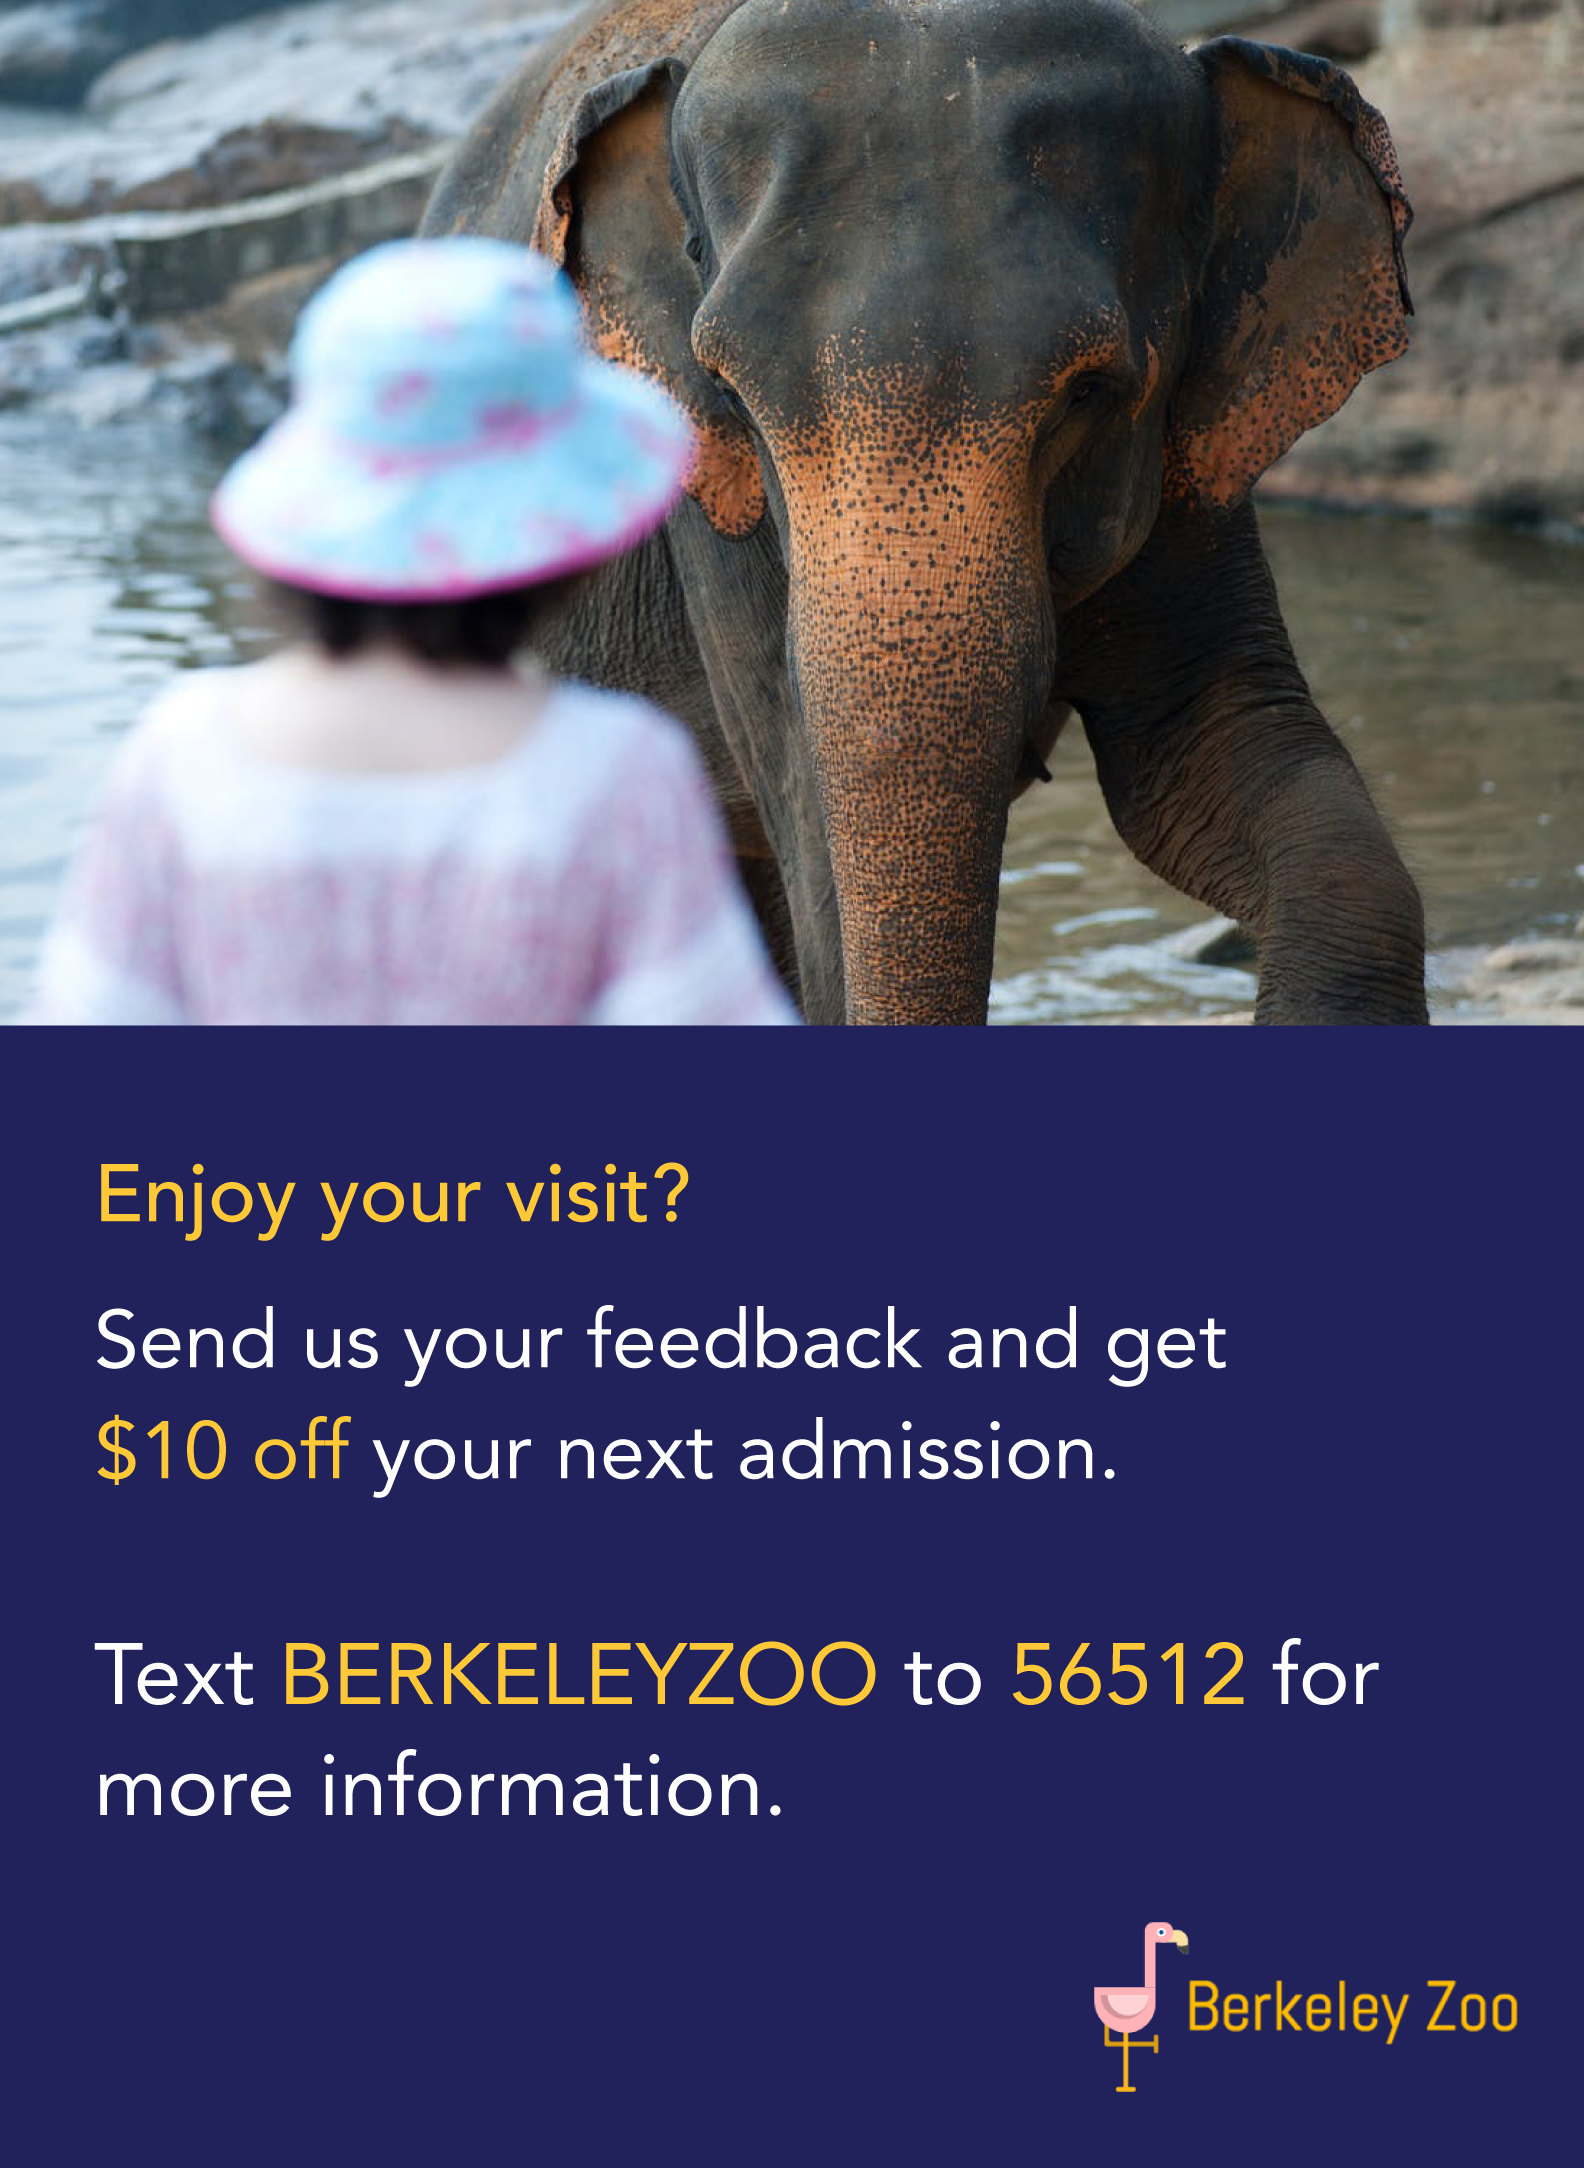 Send feedback for $10 off admission